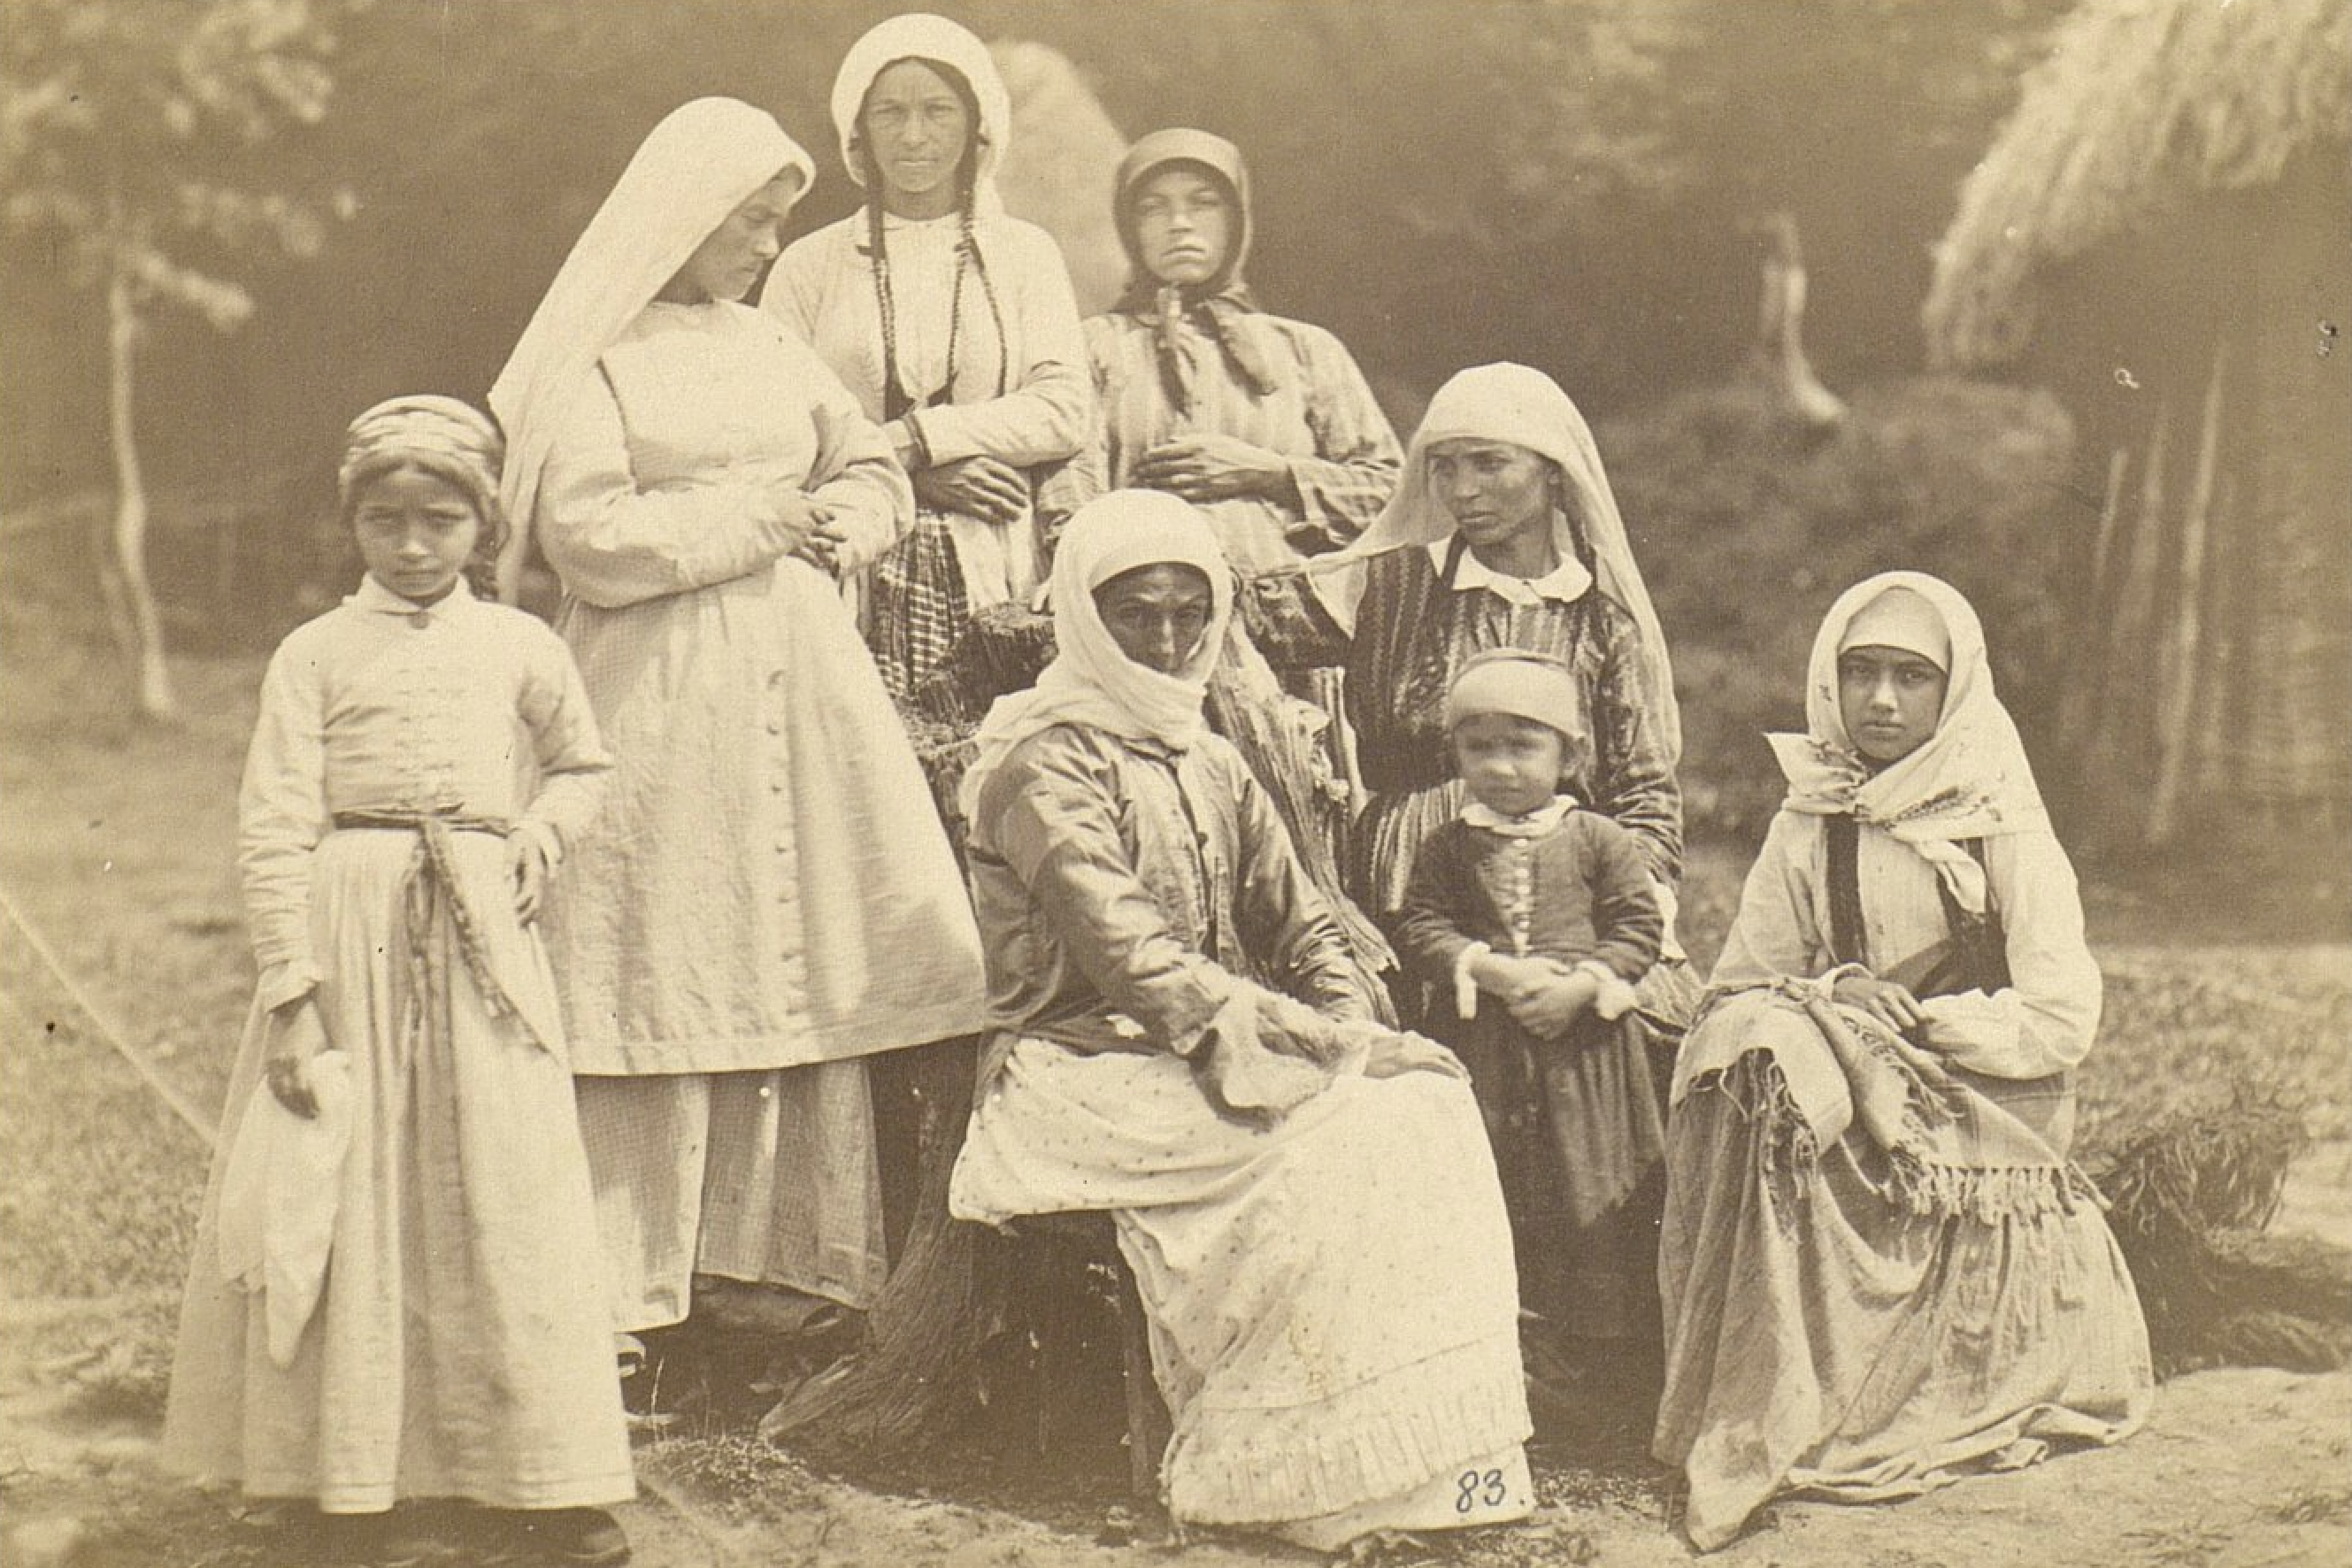 Abkhaz women in the second half of the 19th century